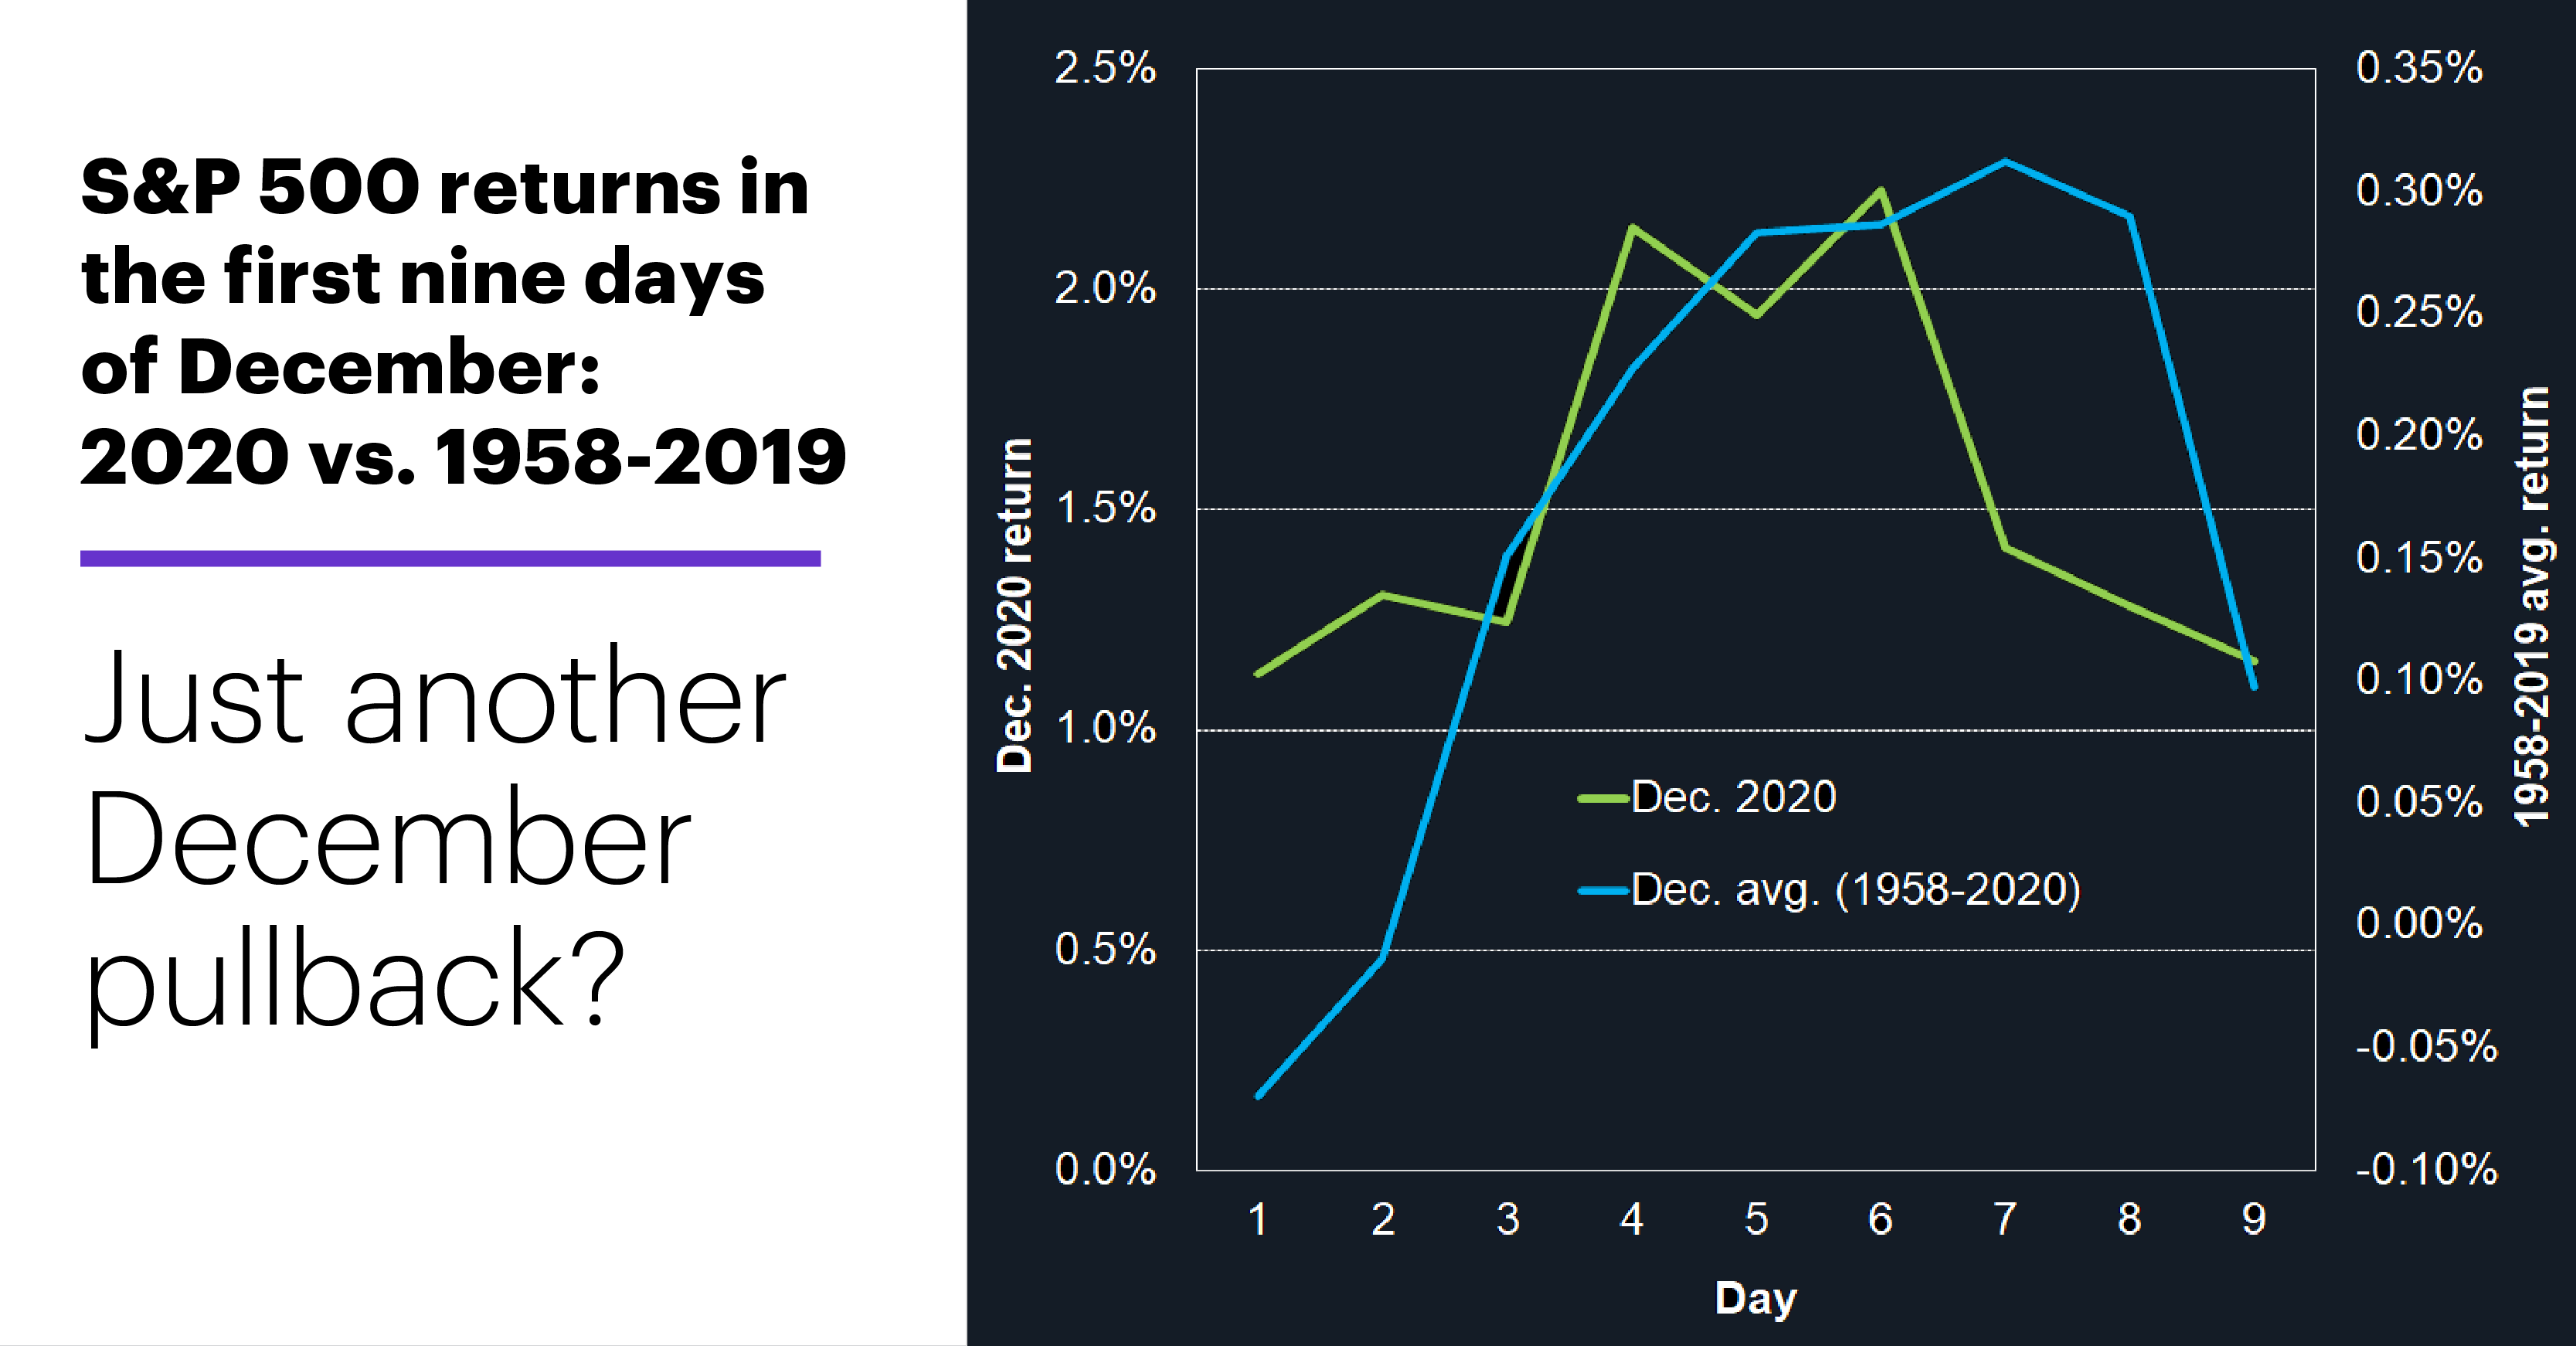 Chart 3: S&P 500 returns in the first nine days of December: 2020 vs. 1958-2019. Just another December pullback?